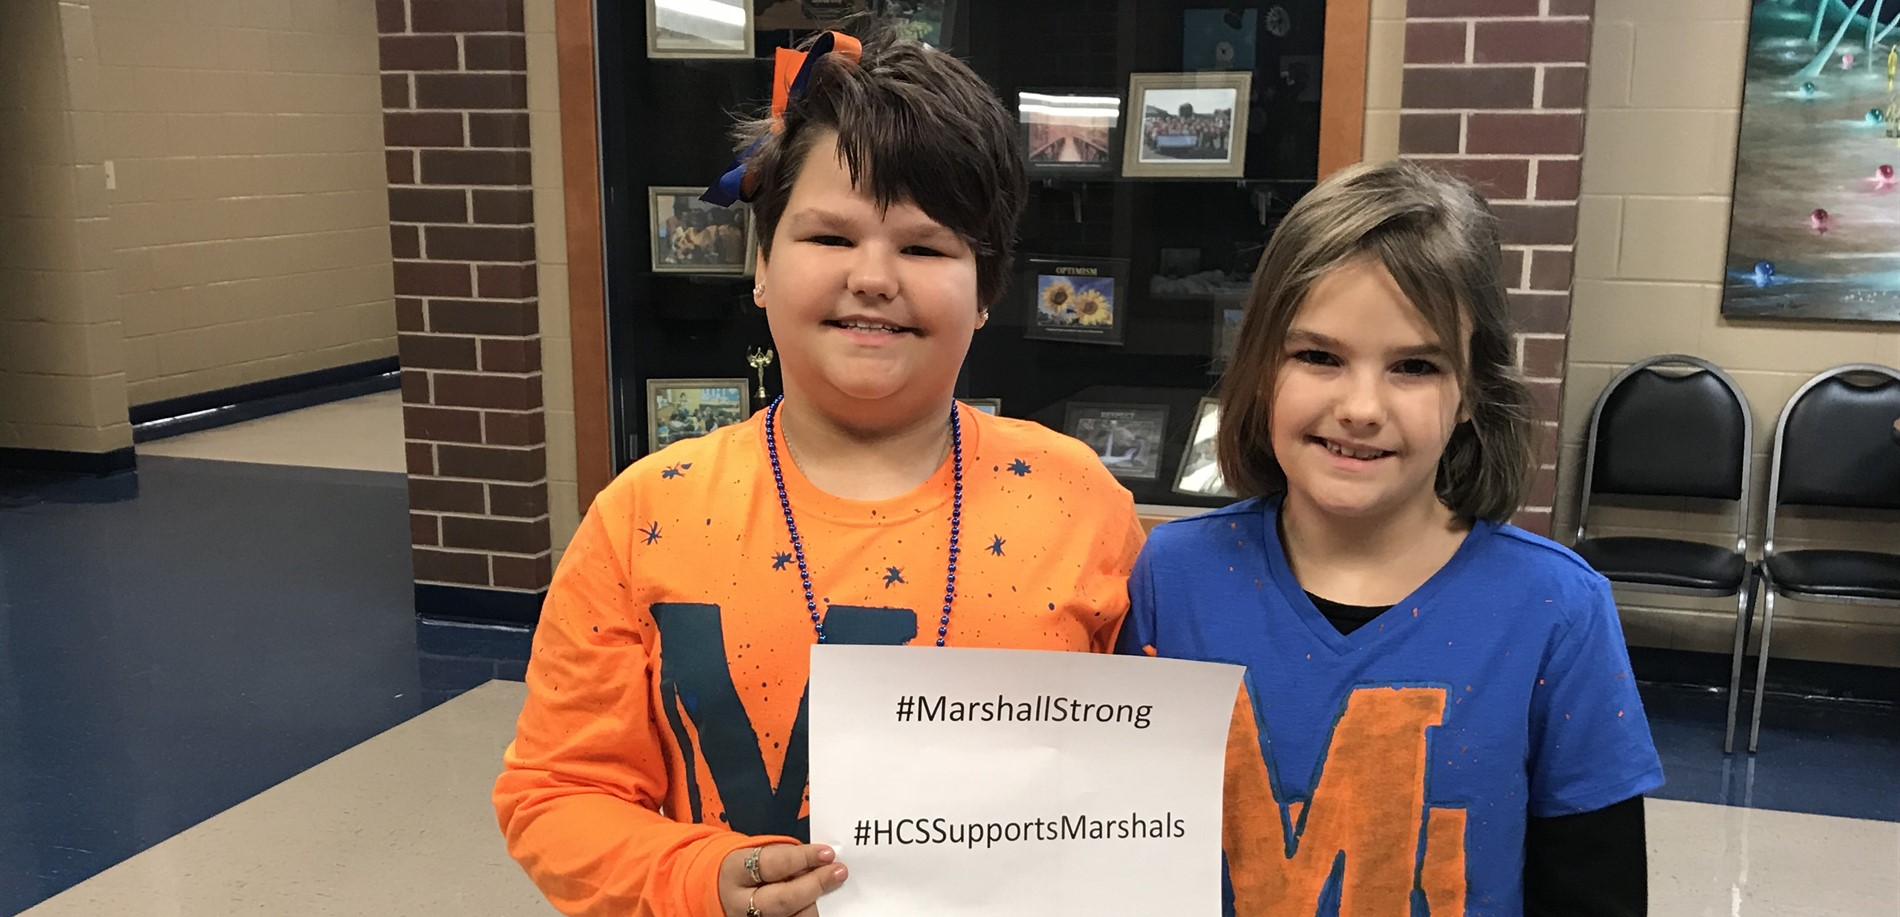 Radcliff Elementary School Supports Marshall County High School!